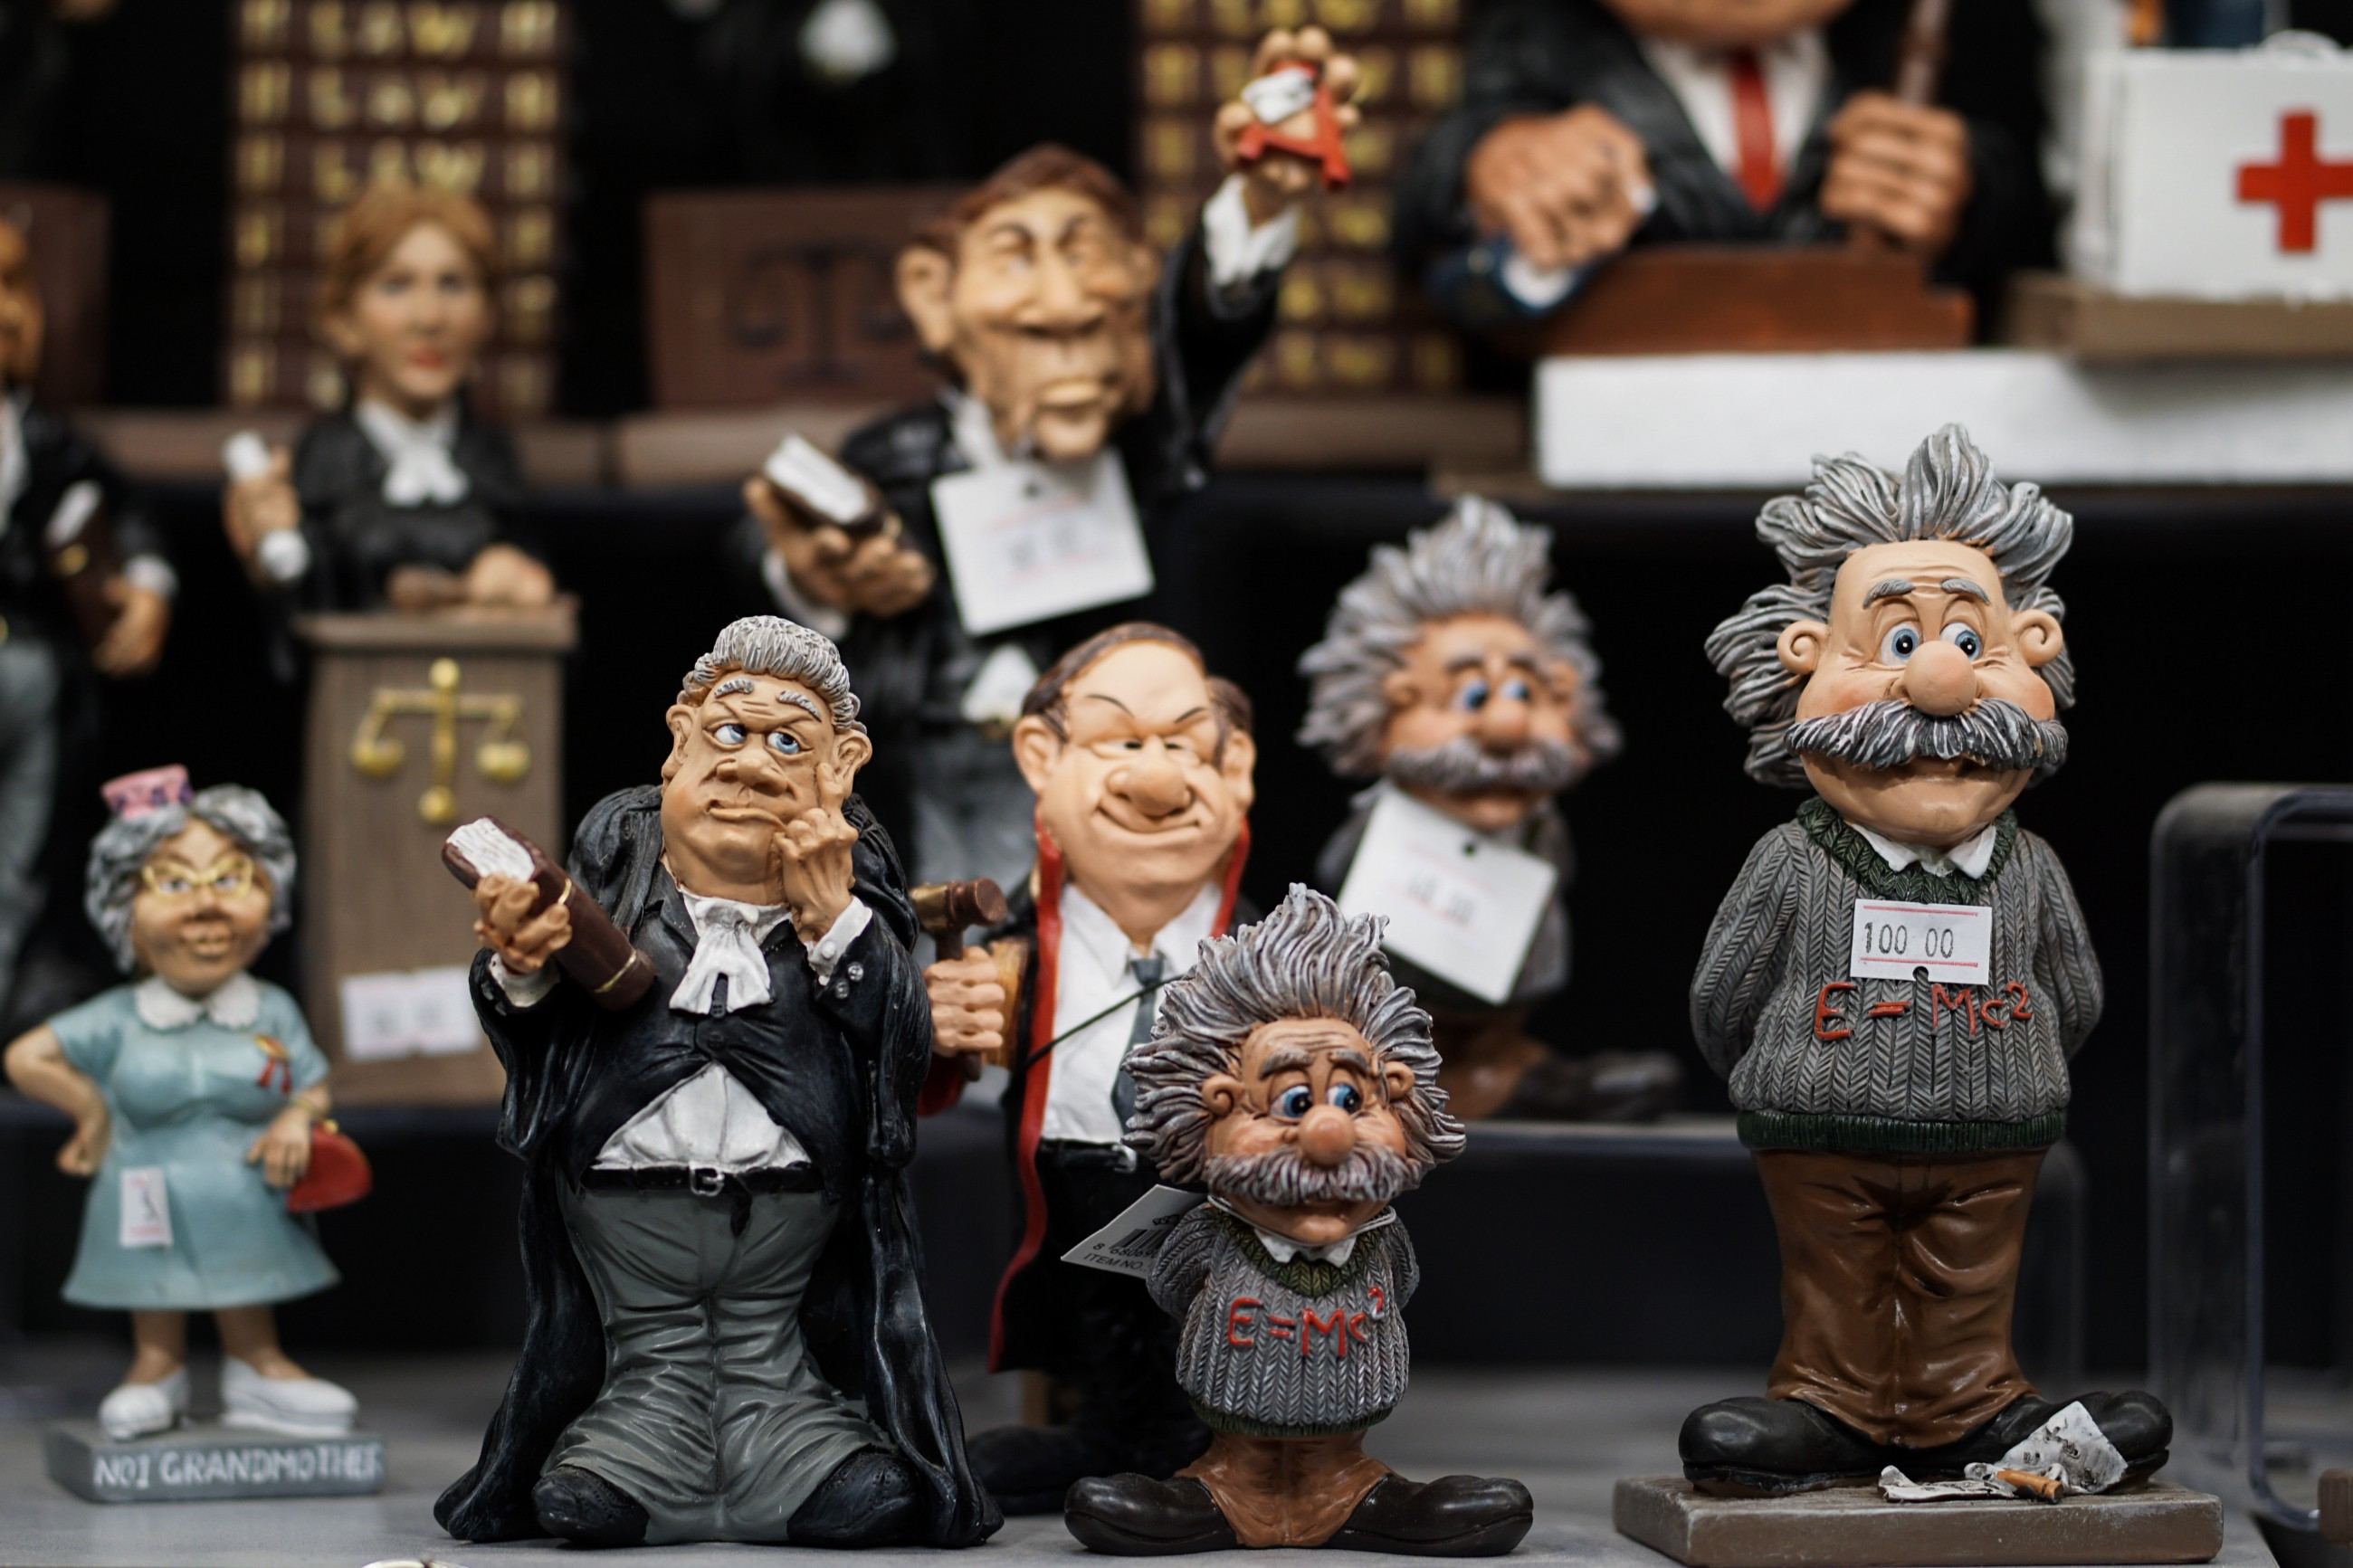 Albert Einstein In His Famous  Essay On Race The Negro Question Assorted Ceramic Figurines By Ugur Peker On Unsplash Business Plan Writers In Nj also English Essay Example  Business Plan Essay